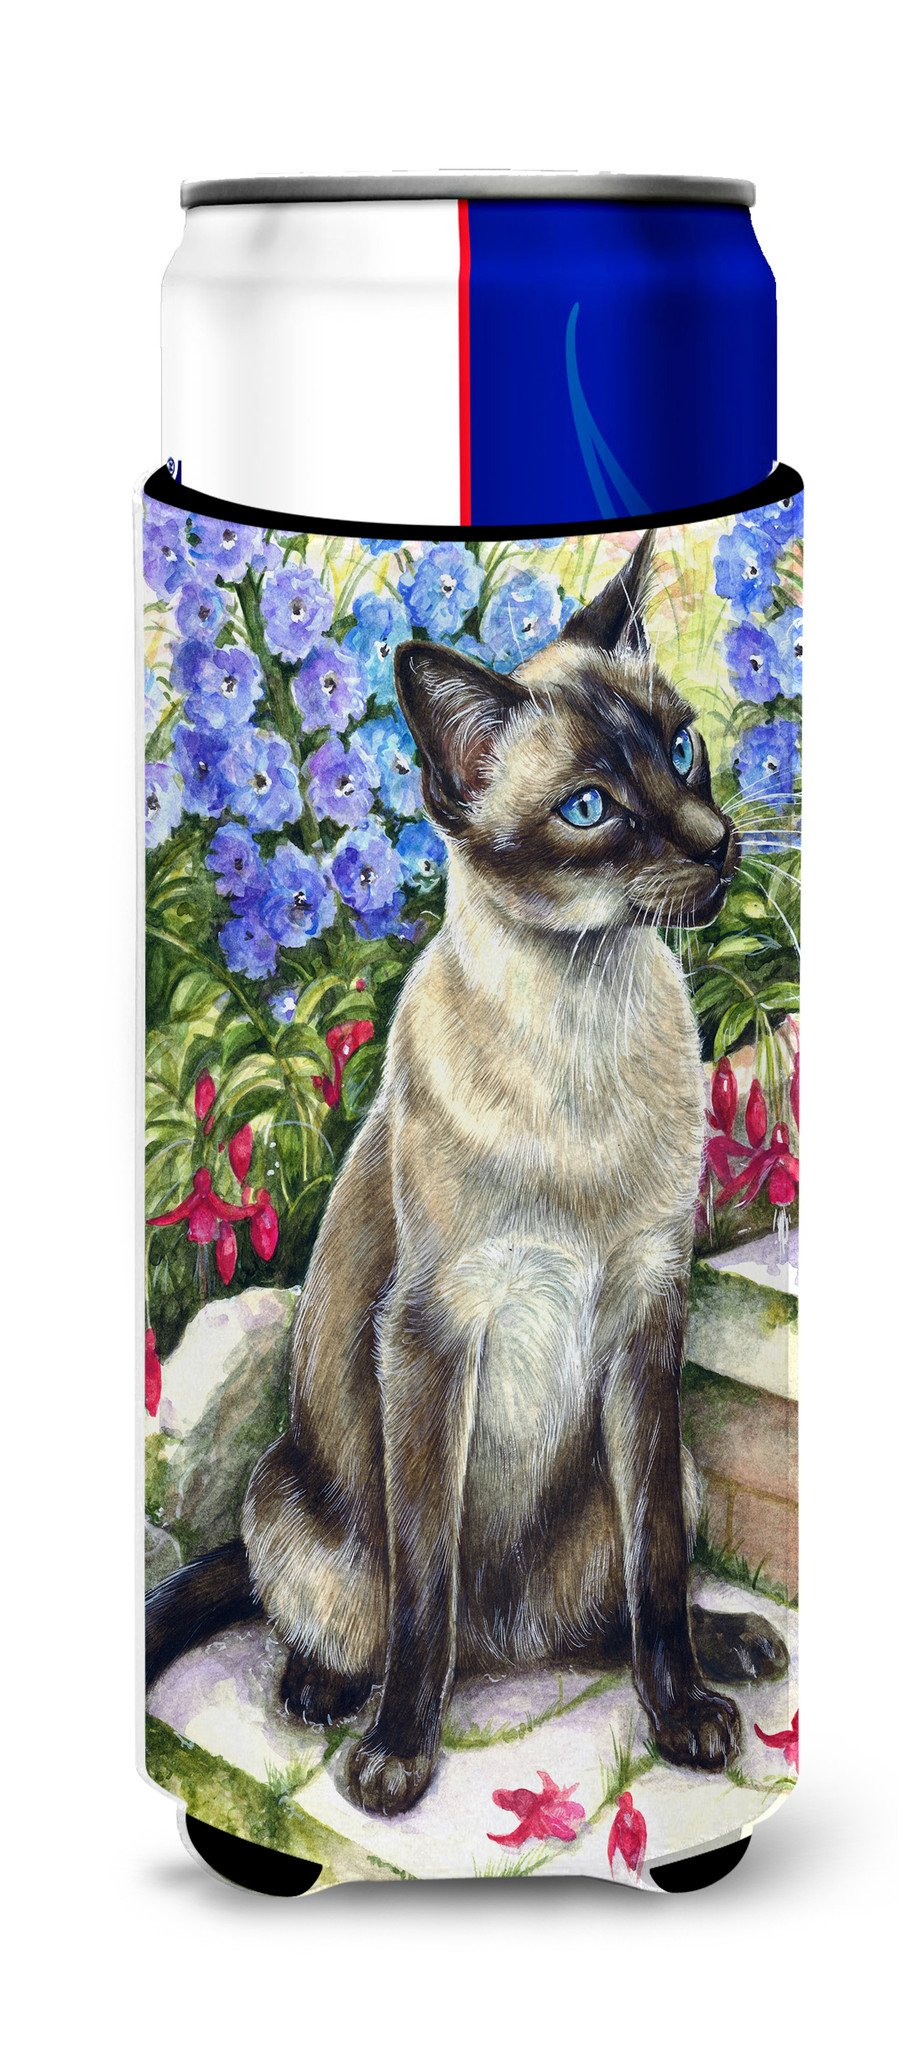 Buy this Siamese cat in the Garden Ultra Beverage Insulators for slim cans CDCO0026MUK